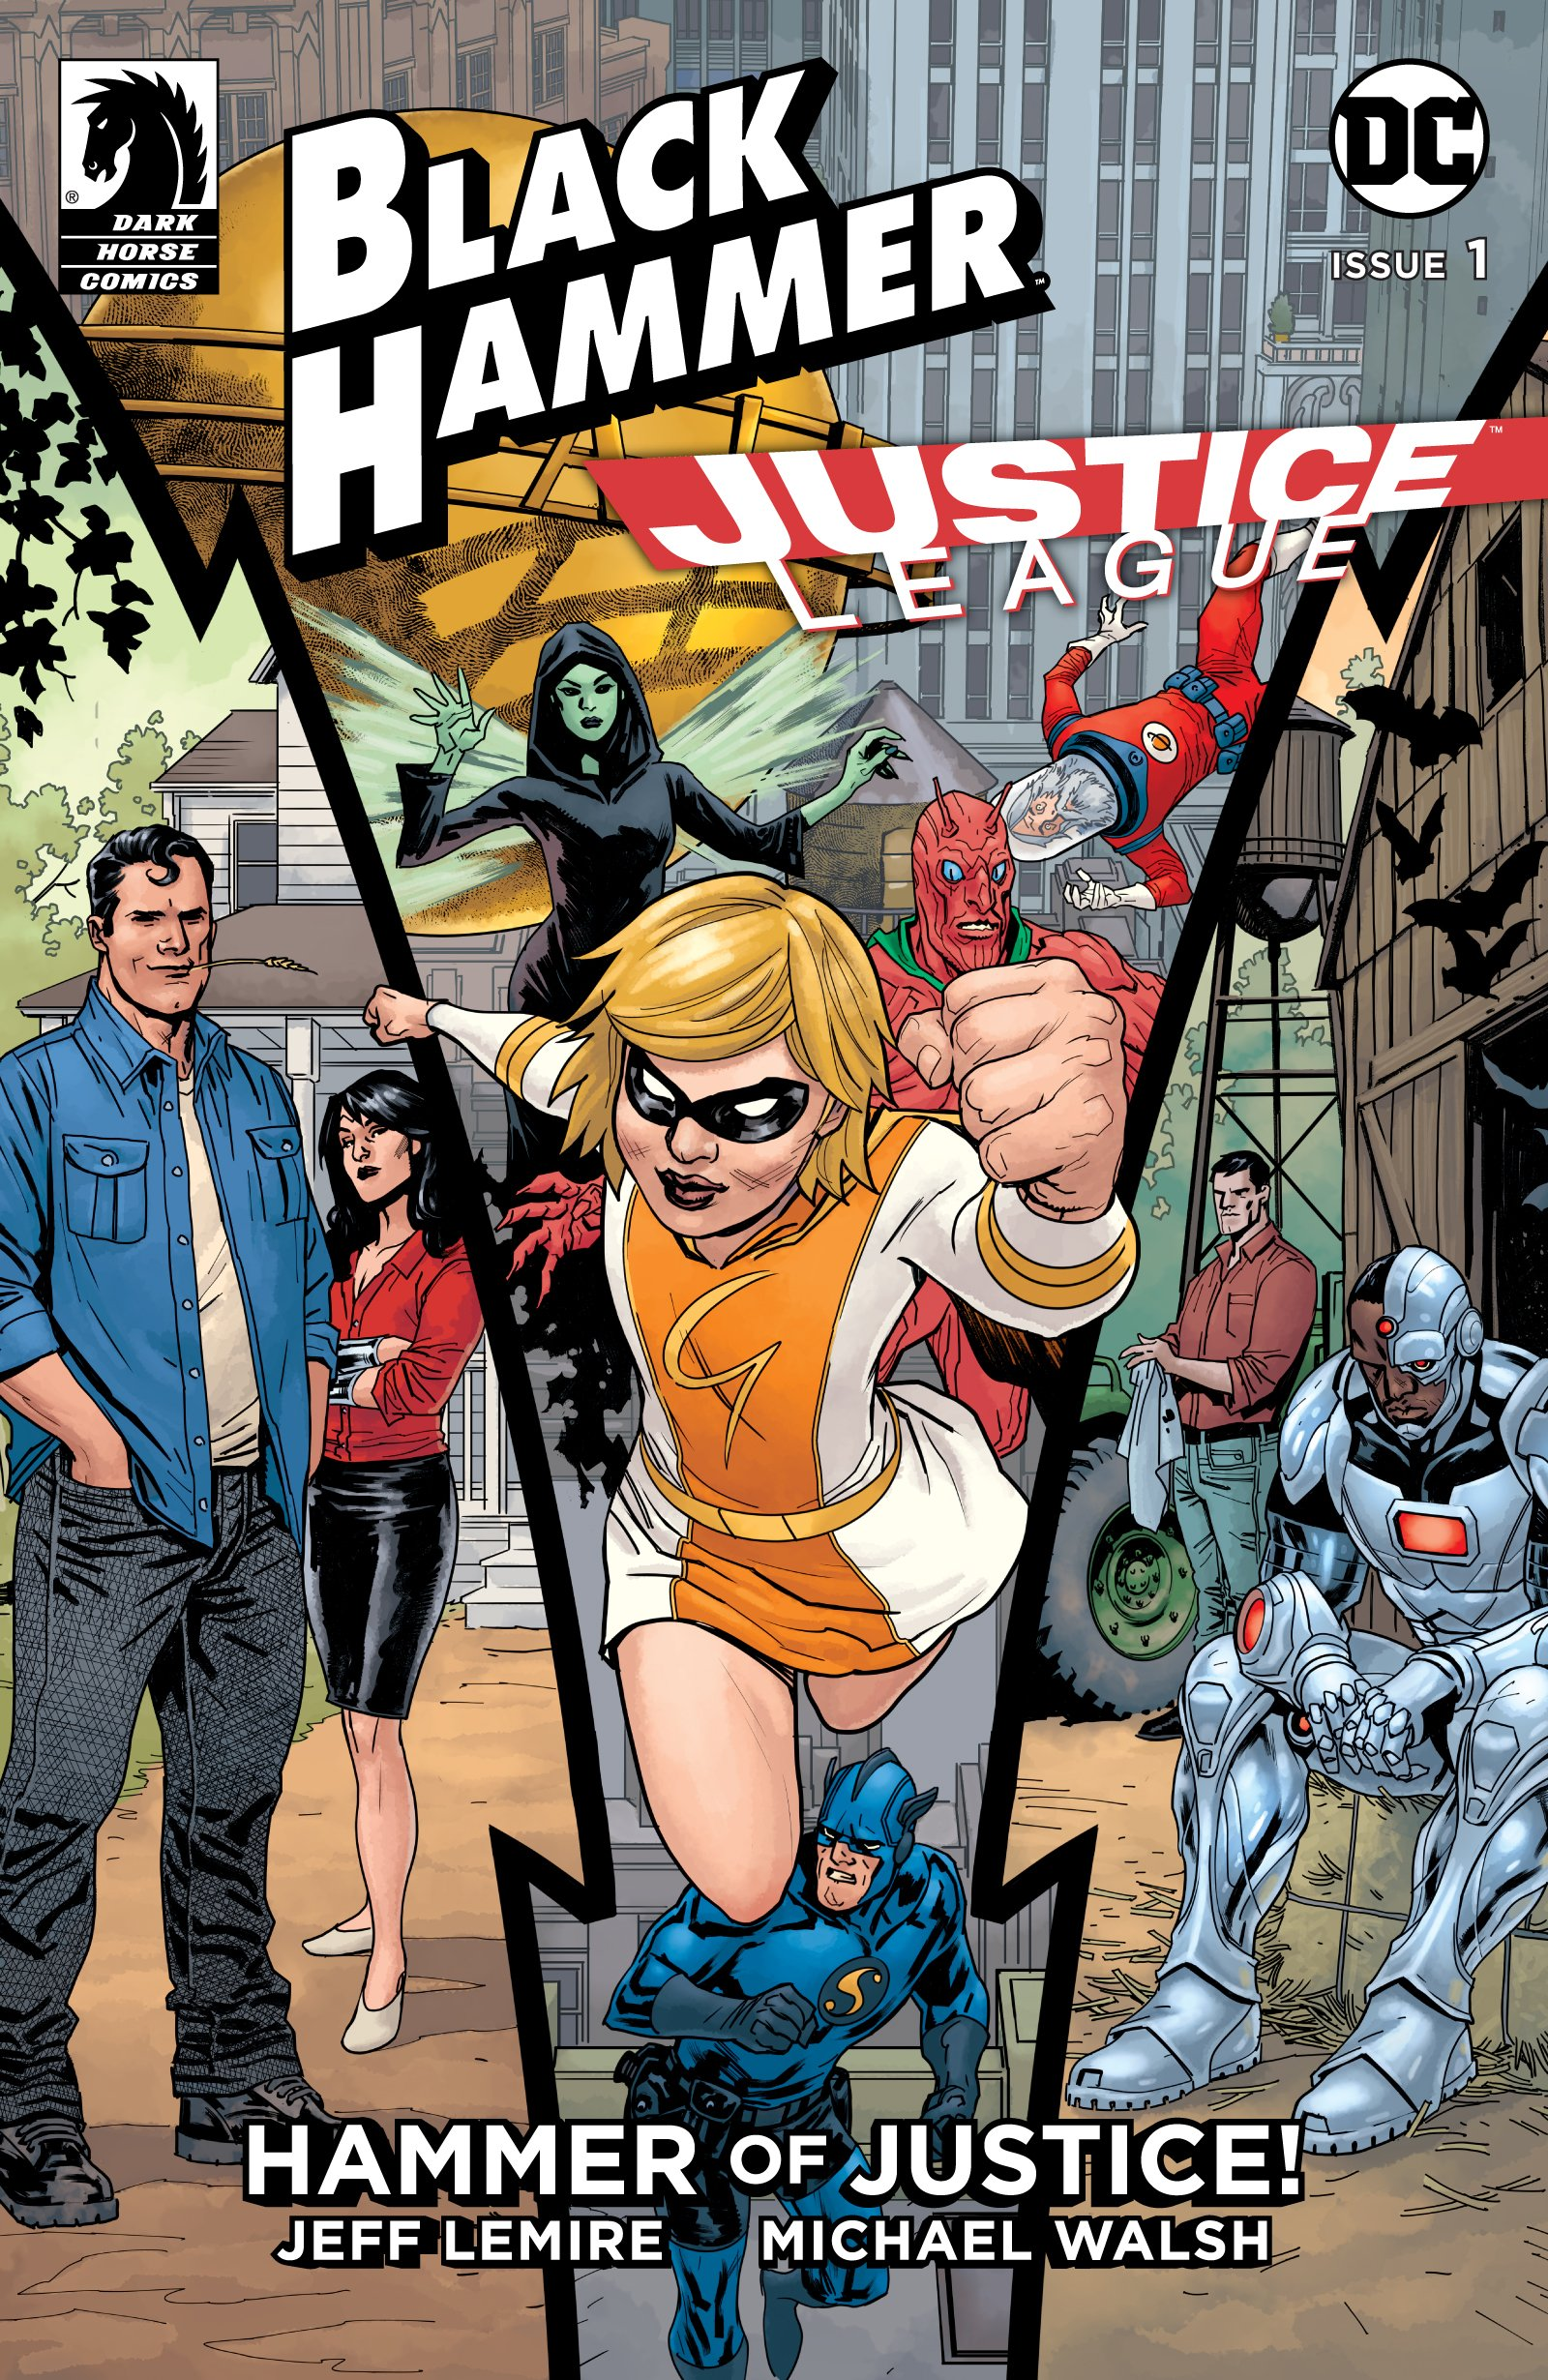 Black Hammer Justice League Hammer of Justice Vol 1 1 Paquette Variant.jpg